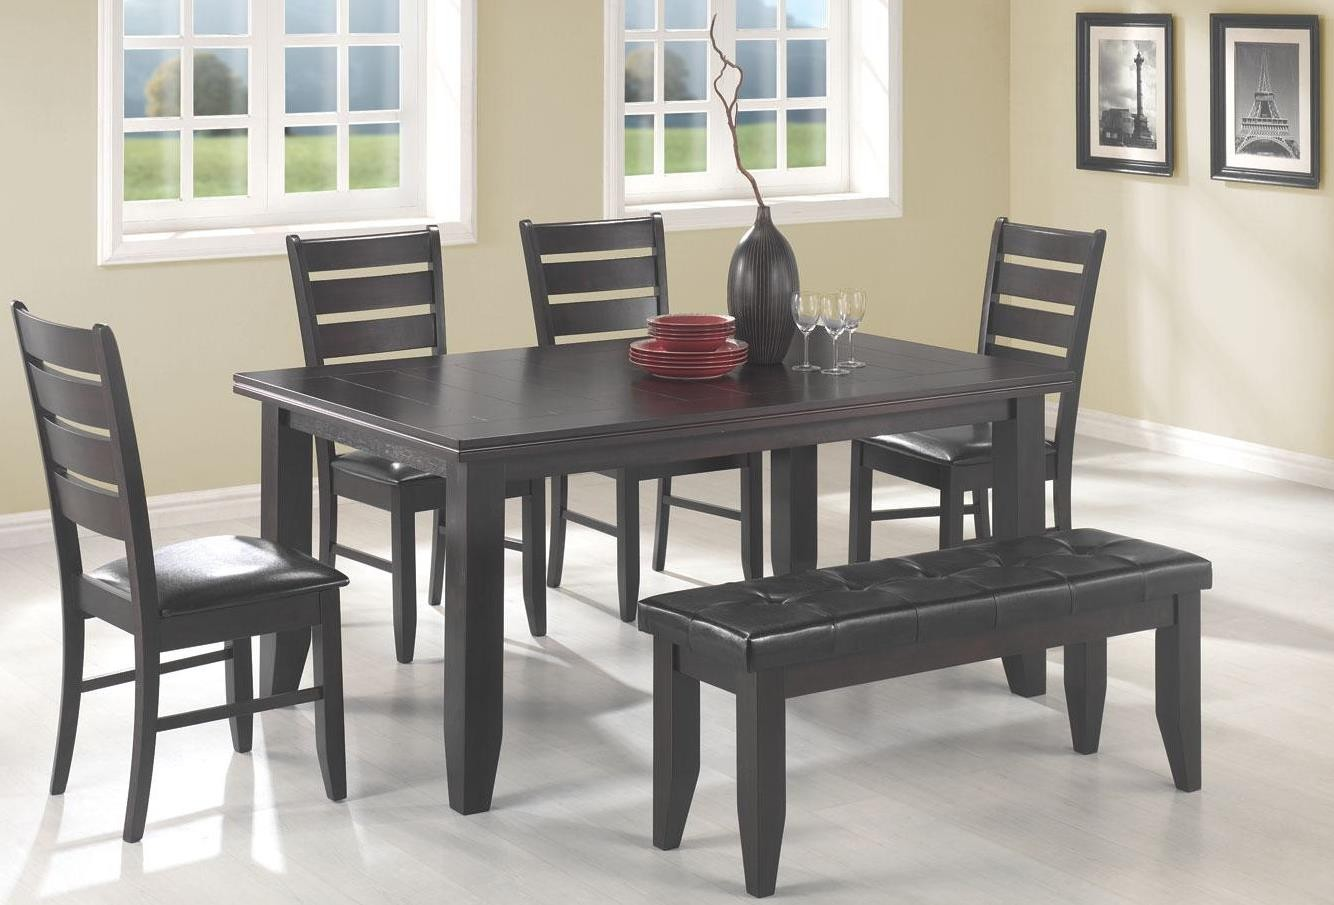 page cappuccino rectangular dining room set from coaster cappuccino dining room furniture collection furniture